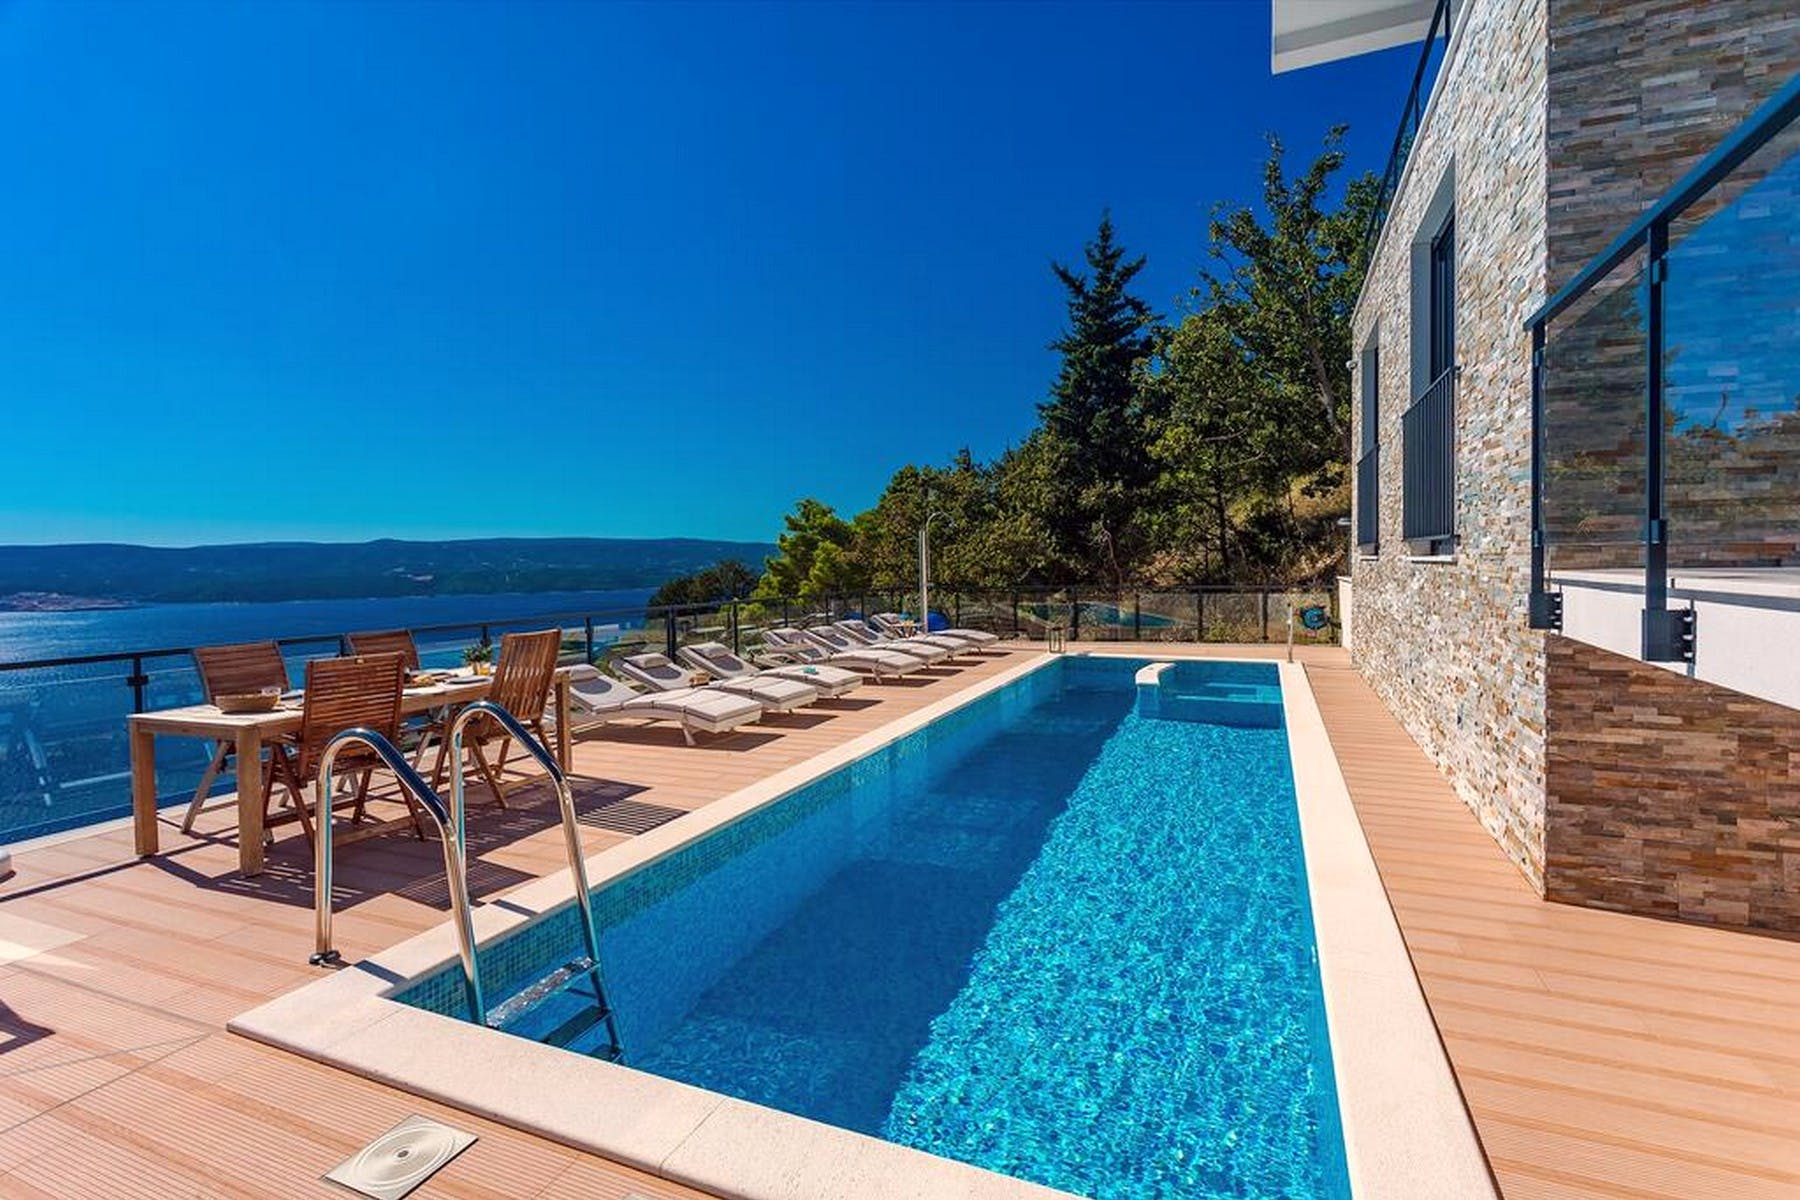 Spacious swimming pool and sundeck overlooking the sea